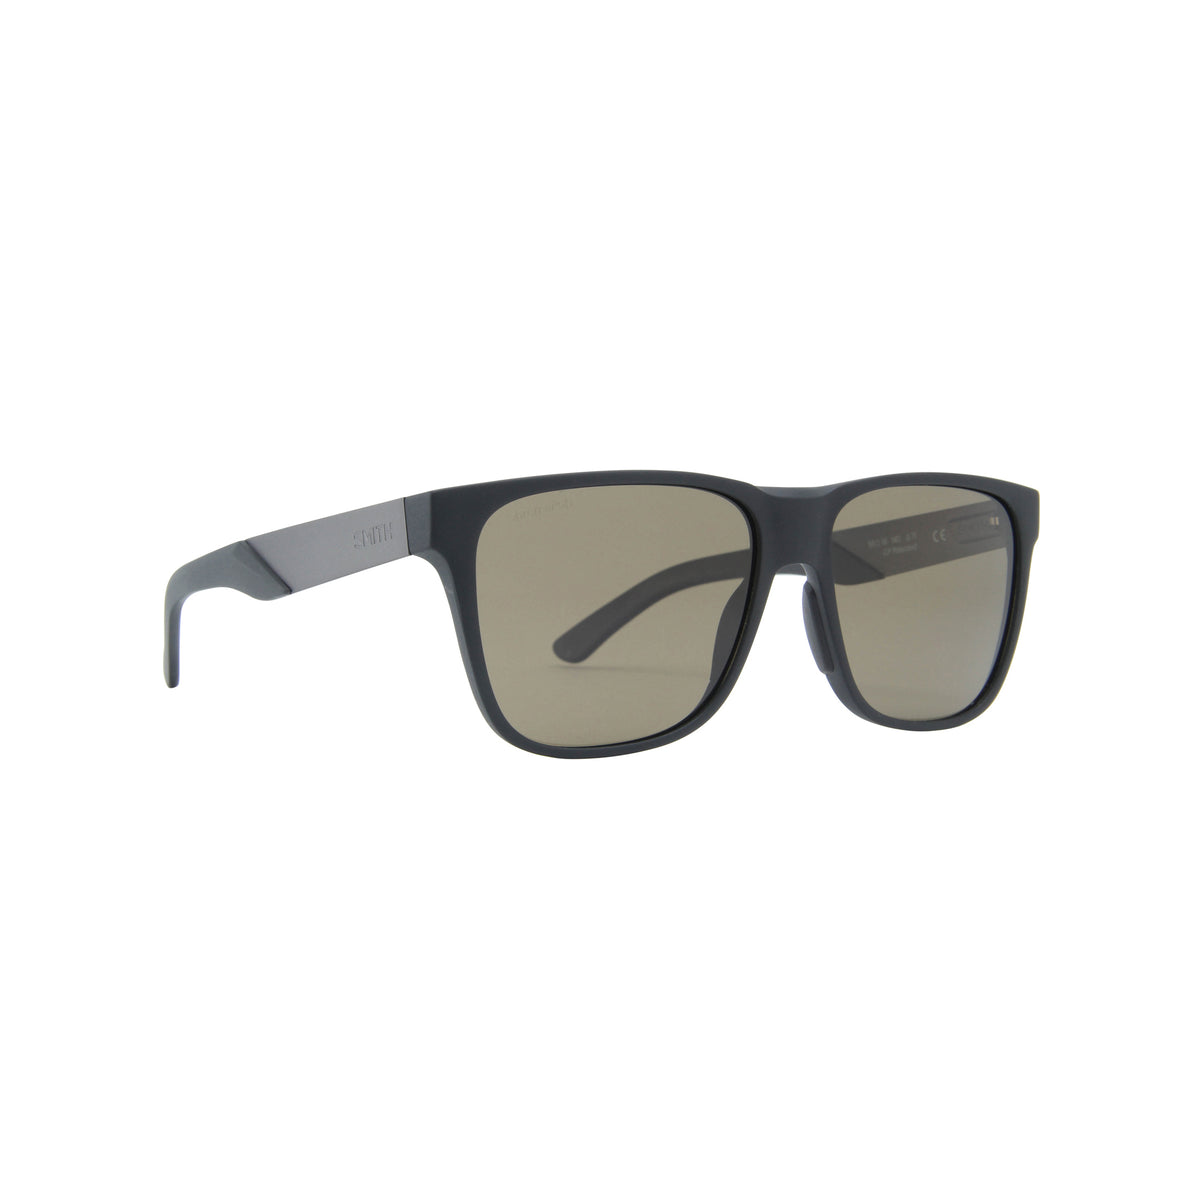 Smith - Lowdown Steel Matte Black Ruthenium/ChromaPop Polarized Gray Green Square Men Sunglasses - 56mm